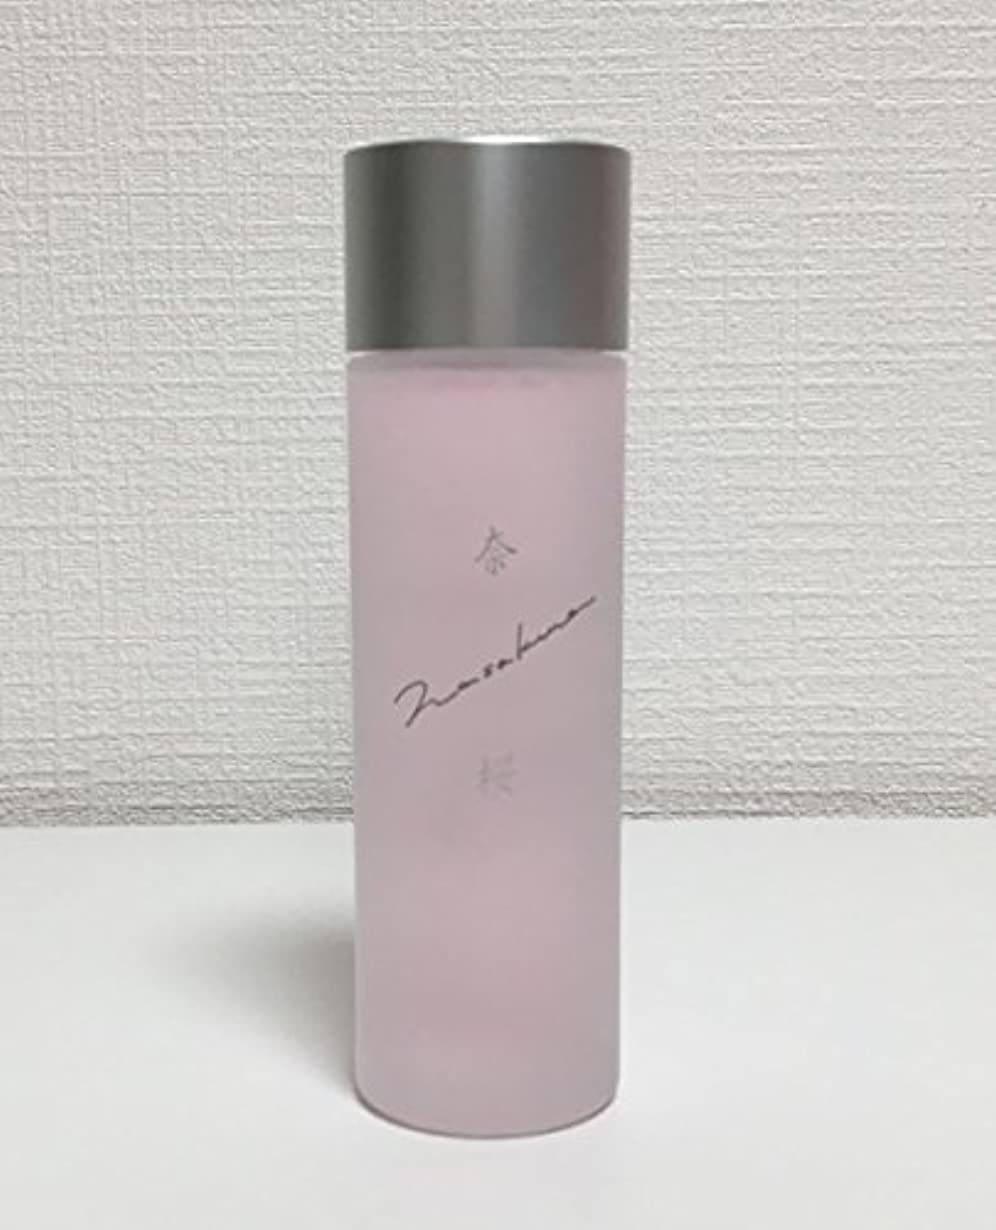 奈桜 化粧水 / nasakura lotion 100ml